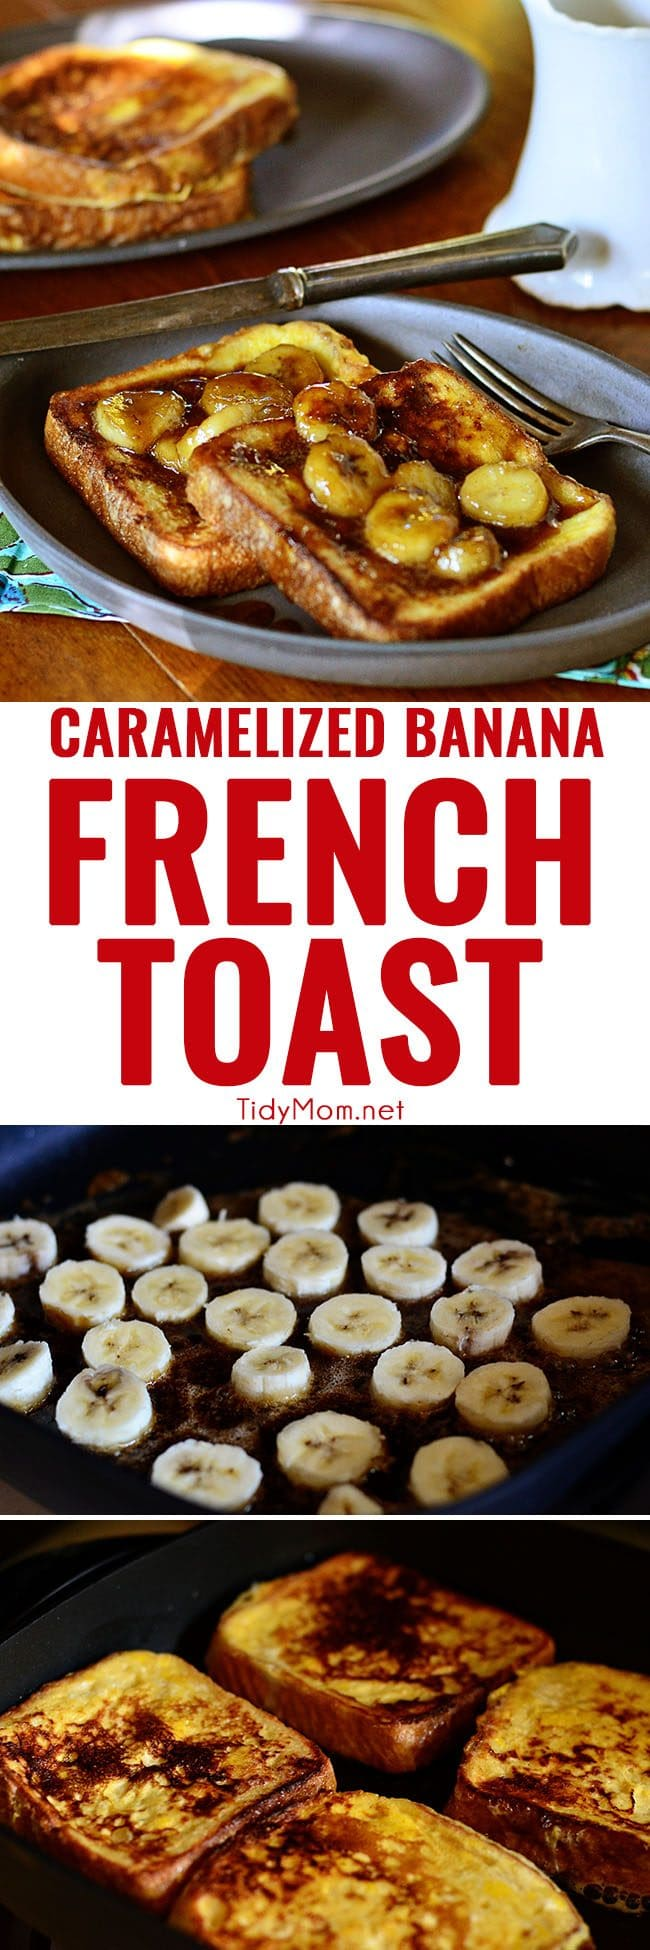 Decadent French Toast With Home Made Caramel Sauce And Bananas, An Easy To  Make Gourmet